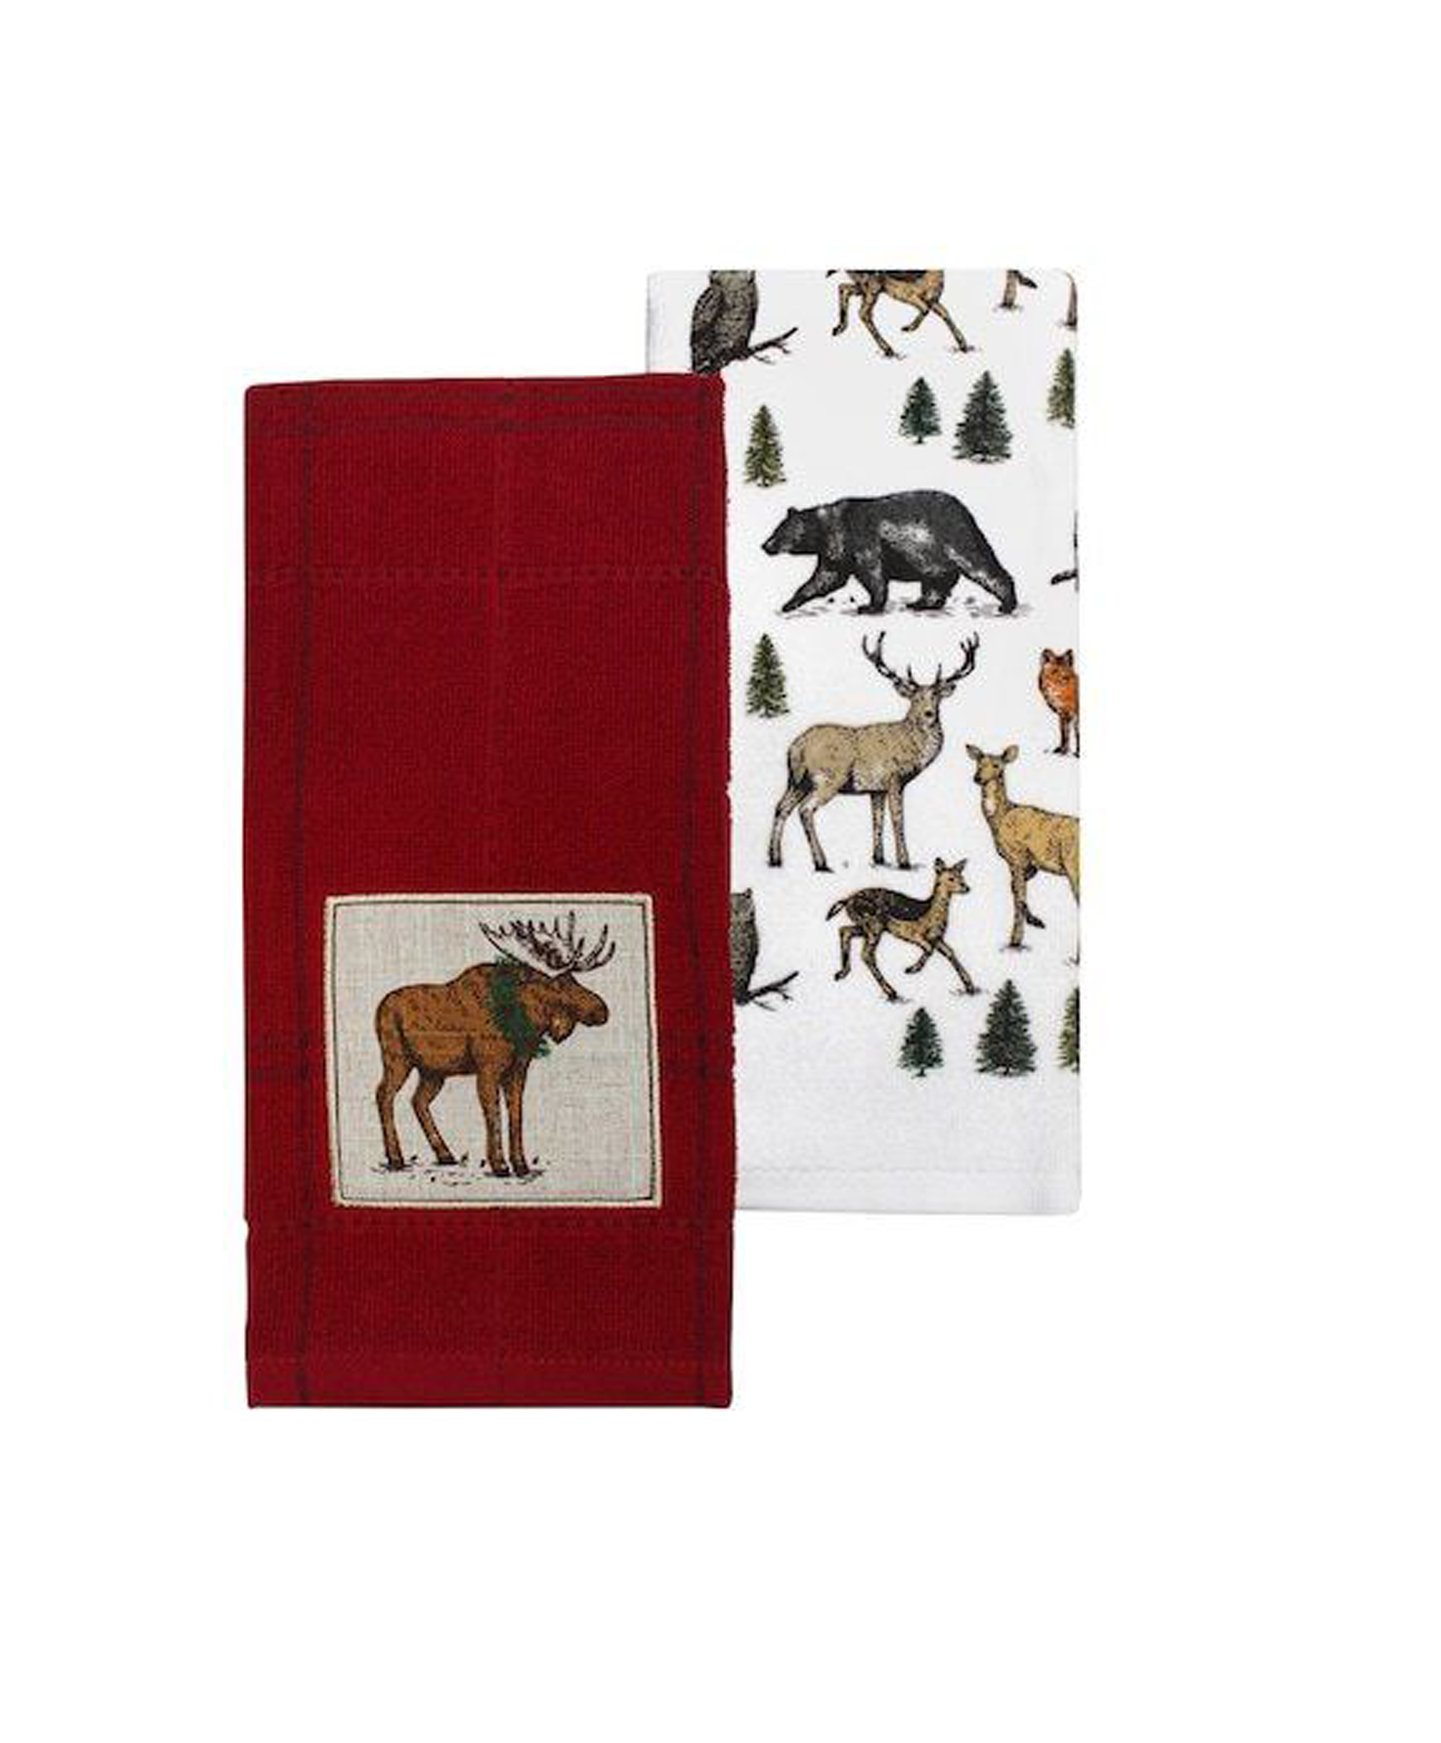 St. Nicholas Square Christmas Moose and Wildlife Kitchen Towels 2 Piece Set Through The Woods